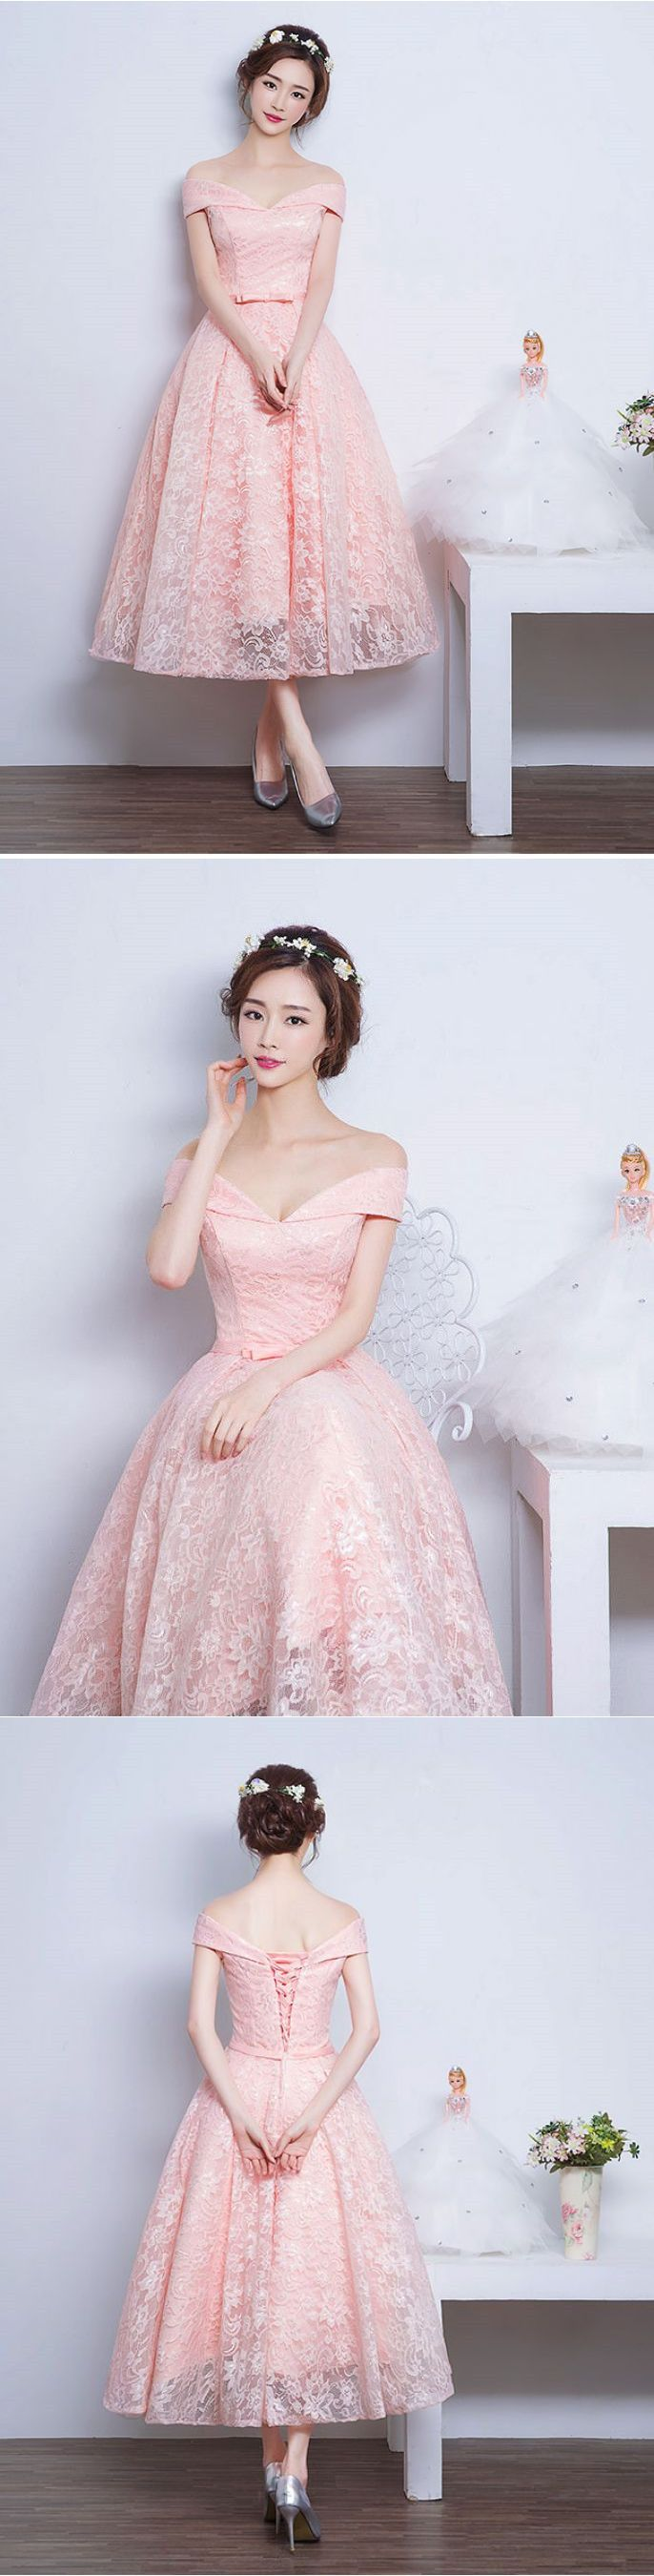 New Fashion Prom Dresses With Lace Prom Dress 1950s Audrey Hepburn Vintage Inspired Off Shoulder Lace Prom Formal Dress Evening Gowns